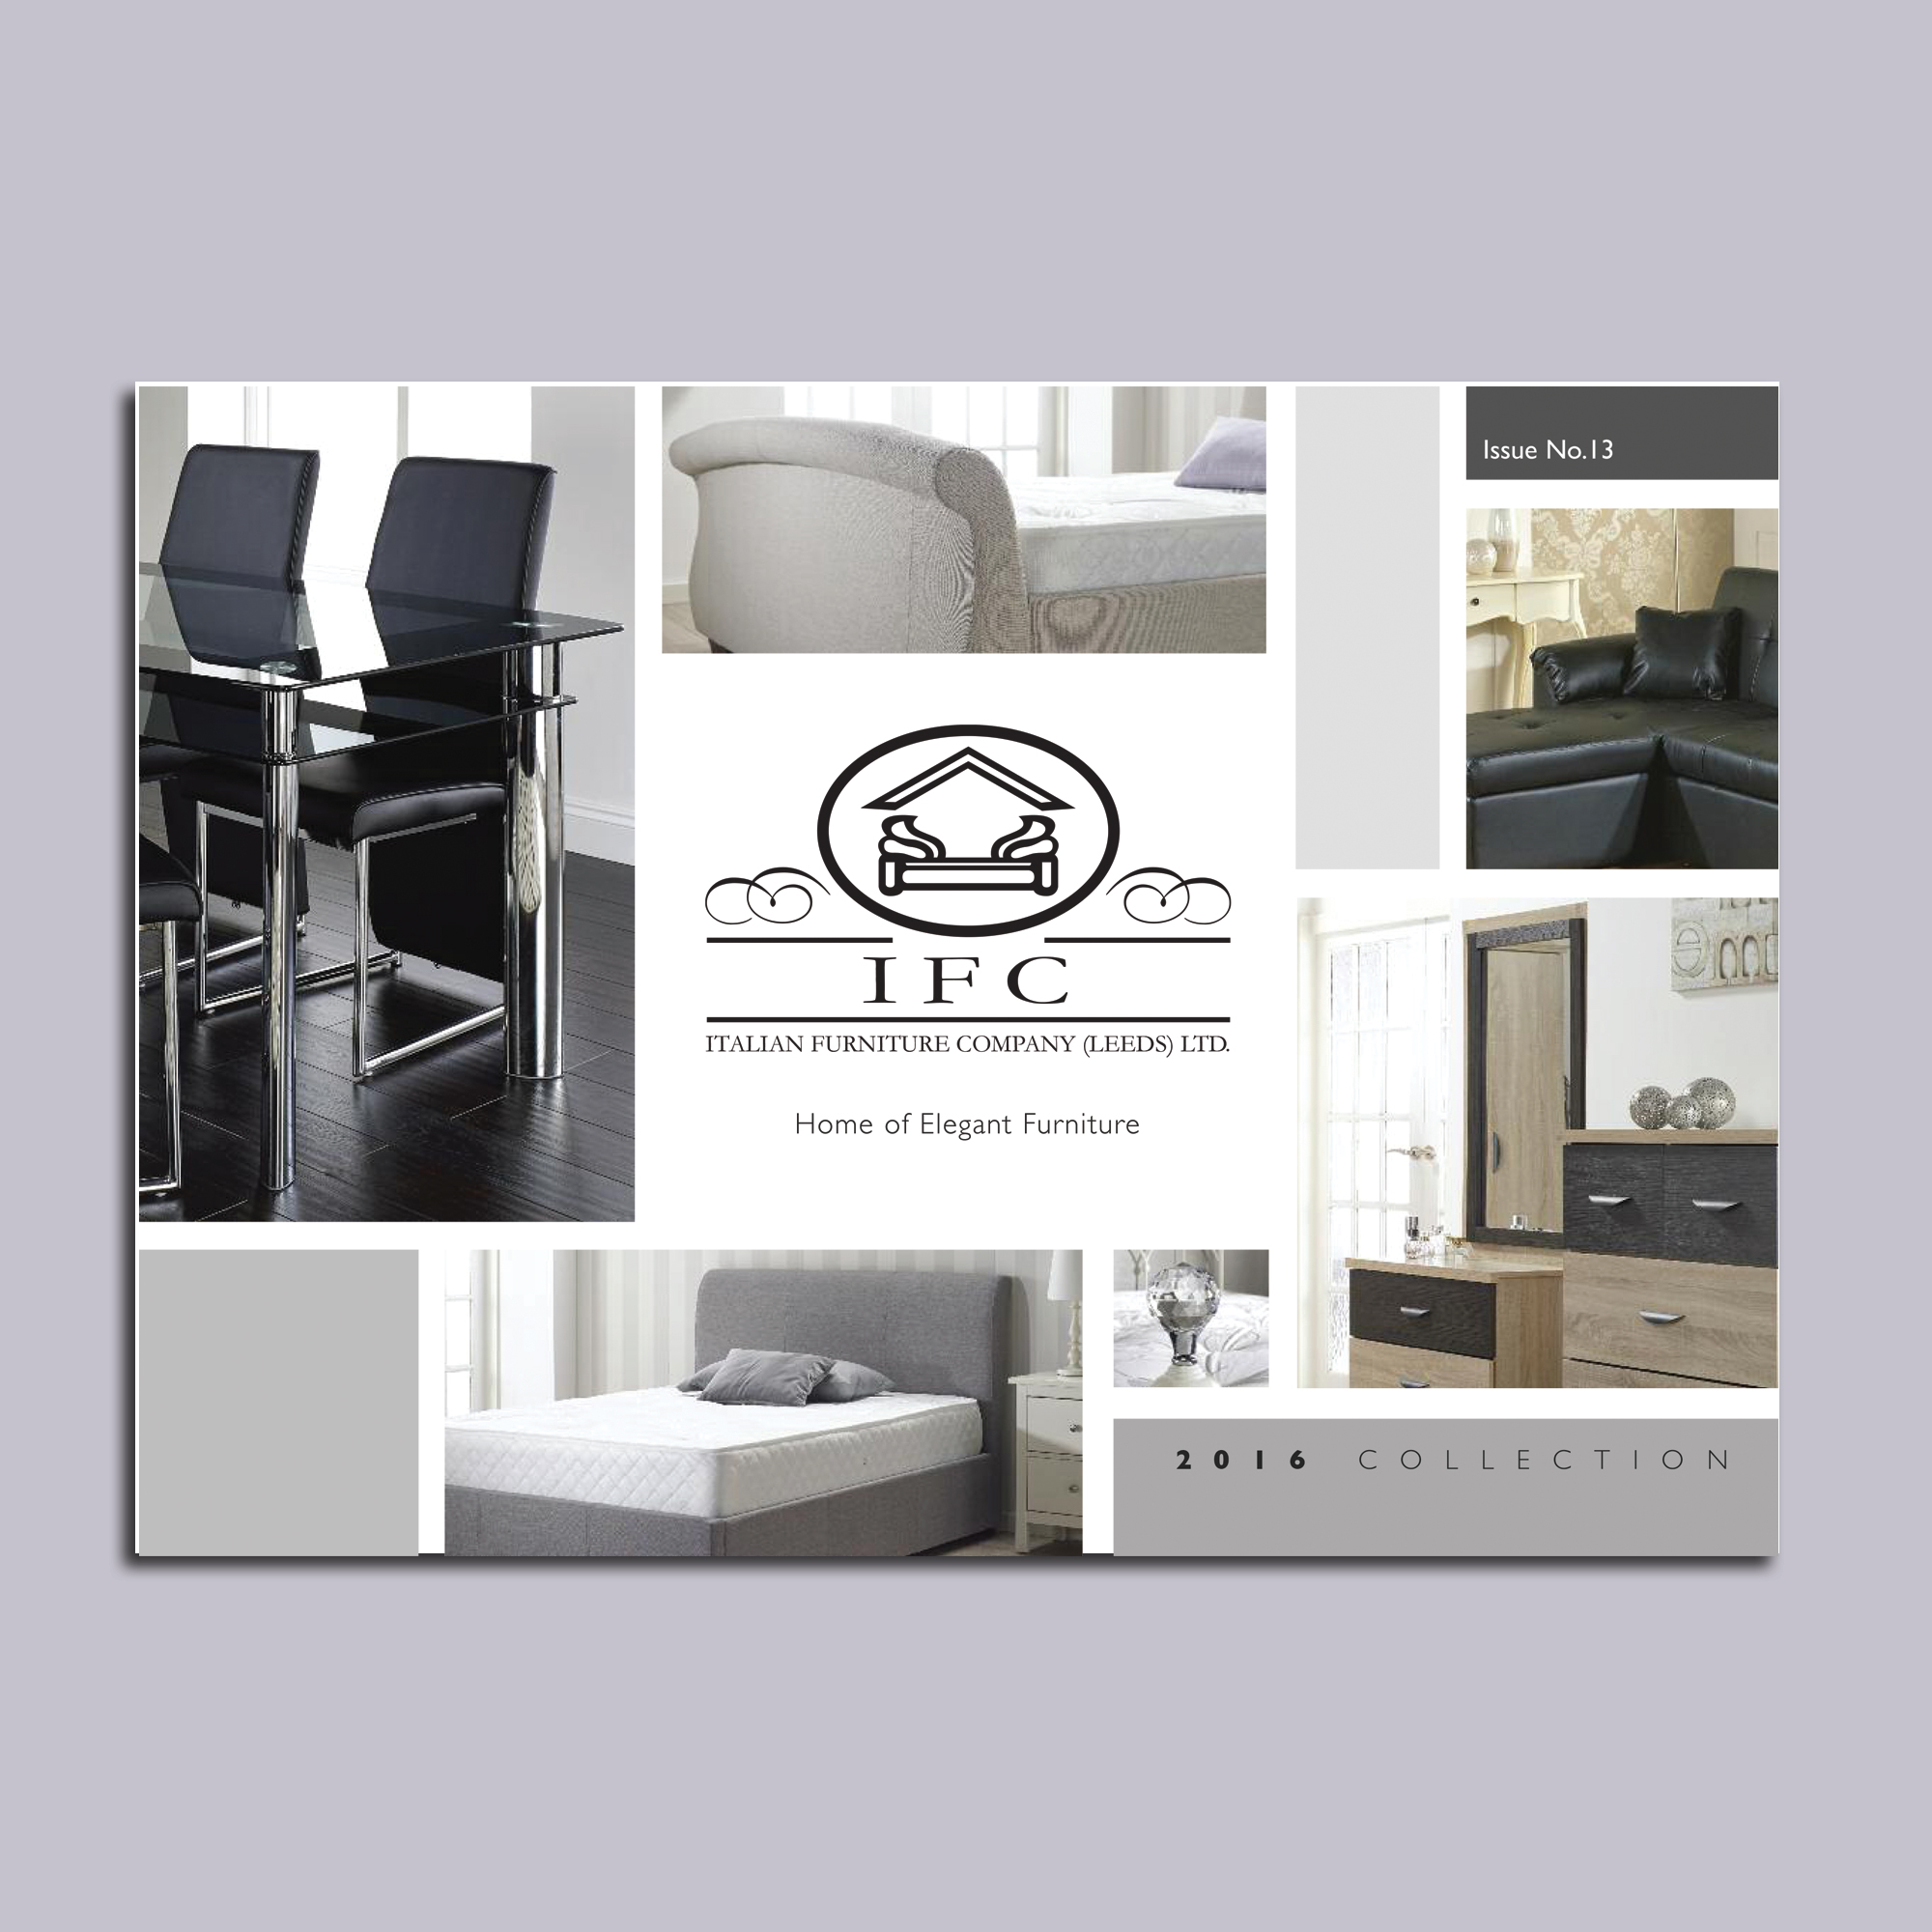 The italian furniture company leeds ltd importers and distributors of quality furniture in Home style furniture catalogue